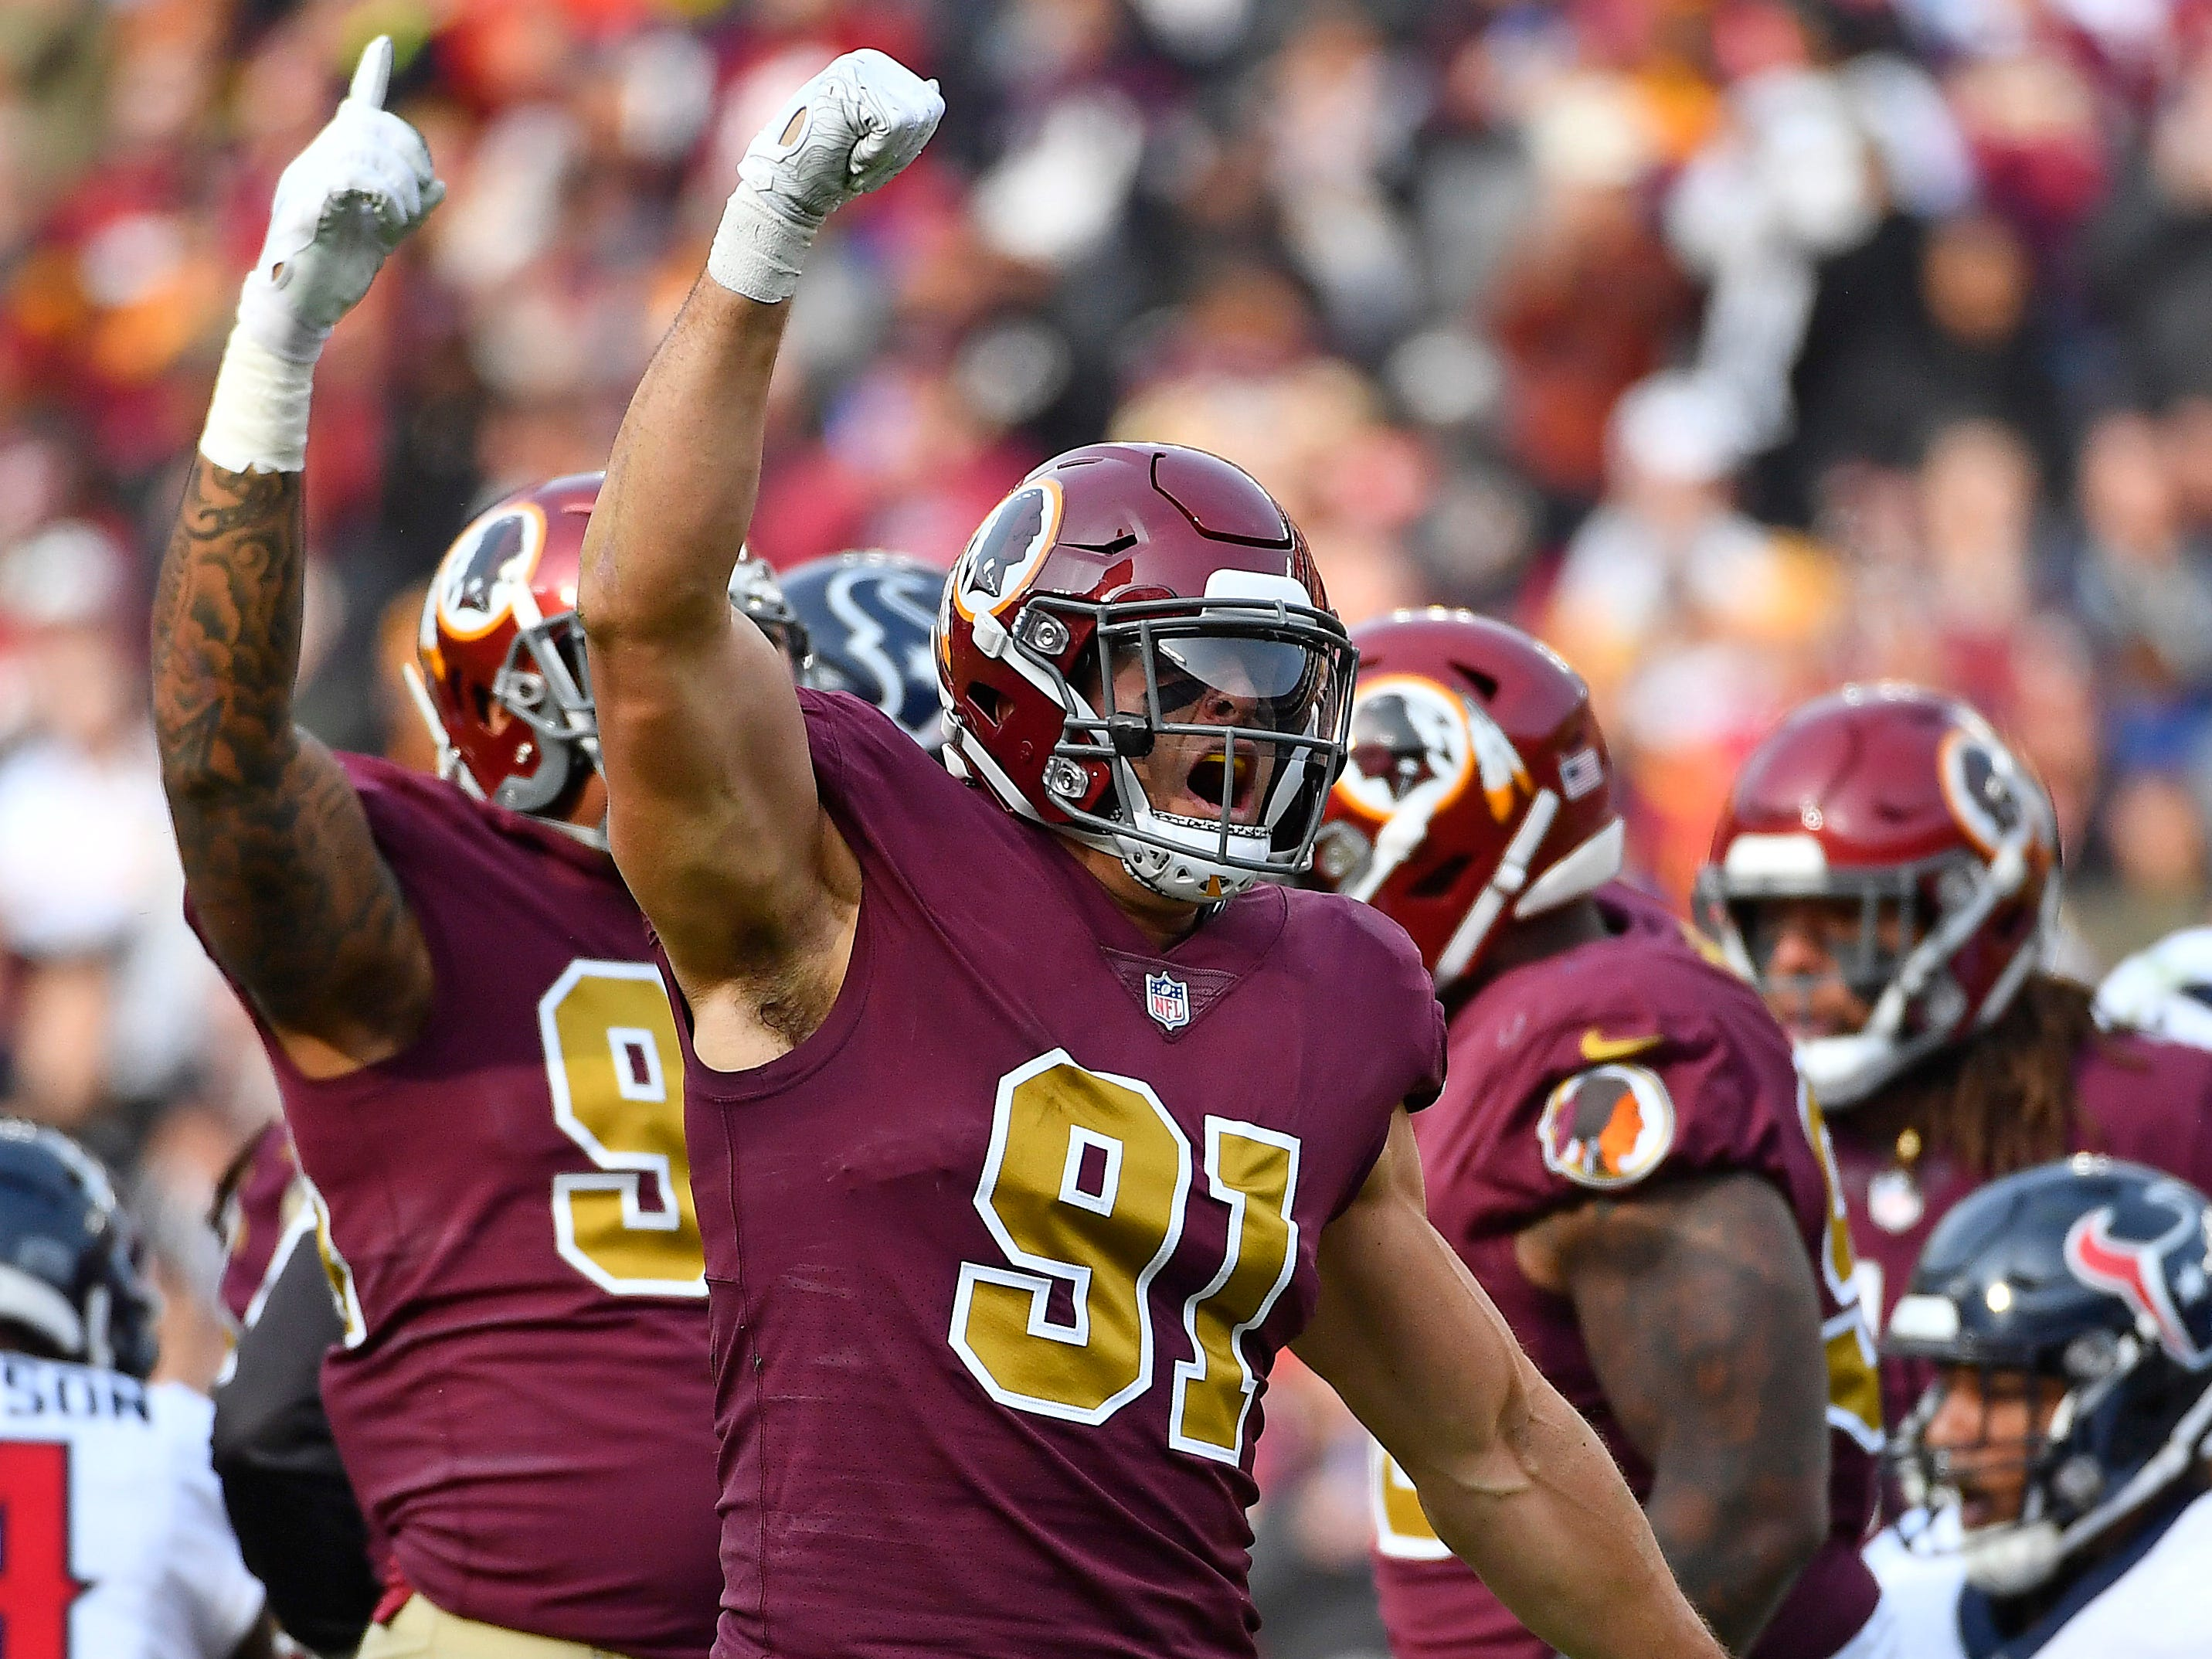 OLB - Ryan Kerrigan, Washington Redskins